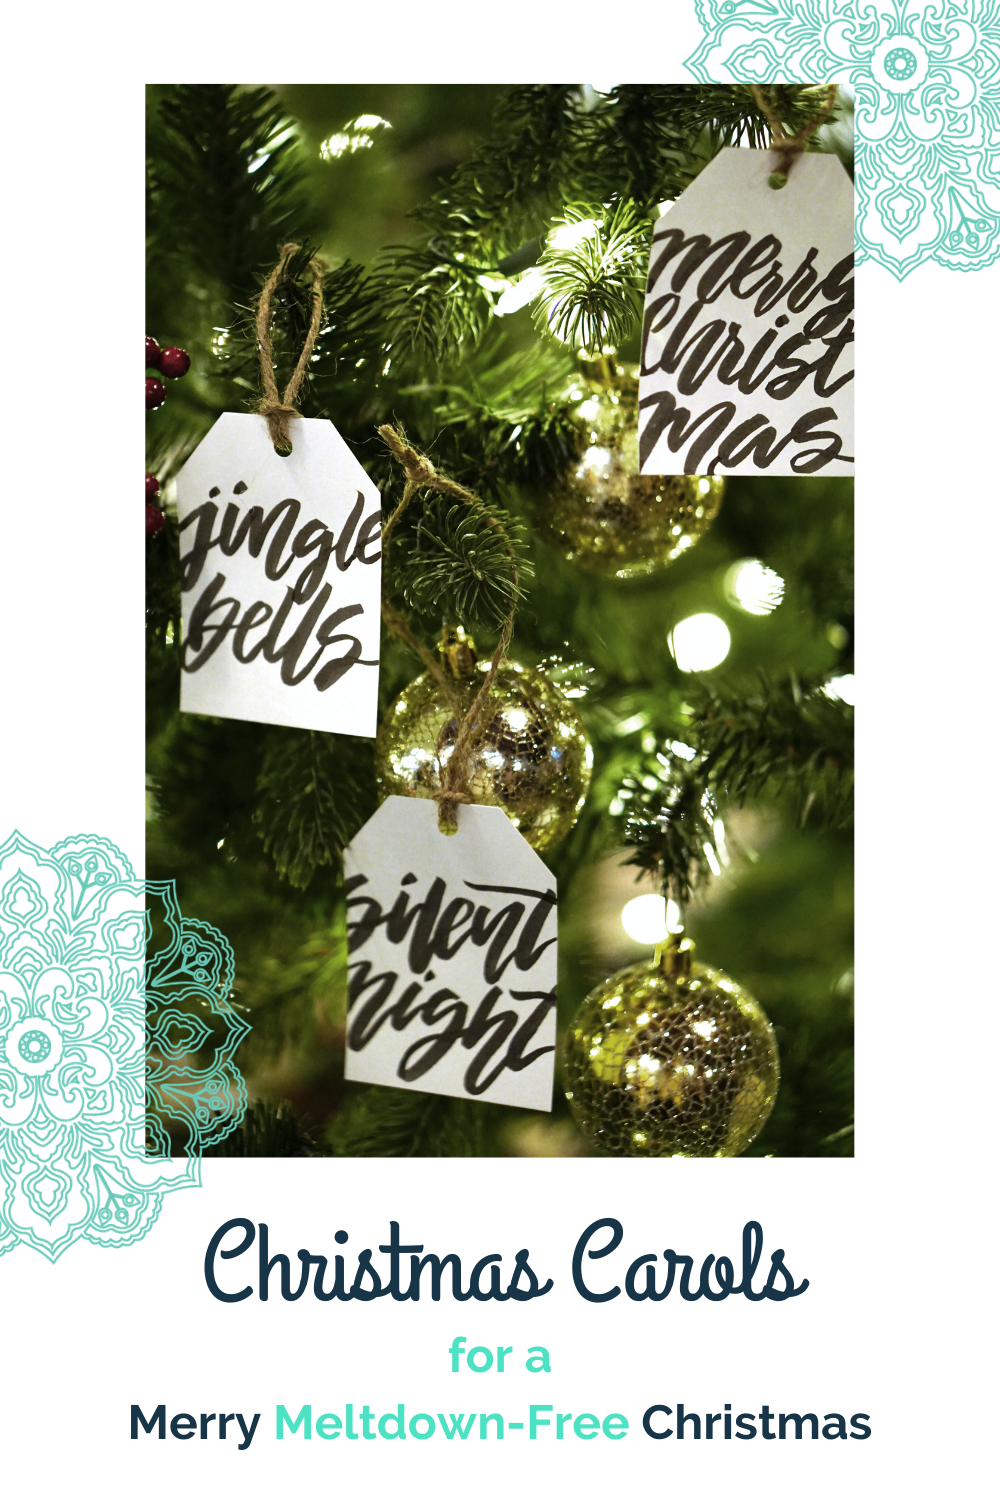 an closeup photo of ornaments hanging on the branches of a Christmas tree including Christmas lights and gift tags that say Jingle Bells, Silent Night, and under the photo are the words, Christmas Carols for a Merry Meltdown-free Christmas